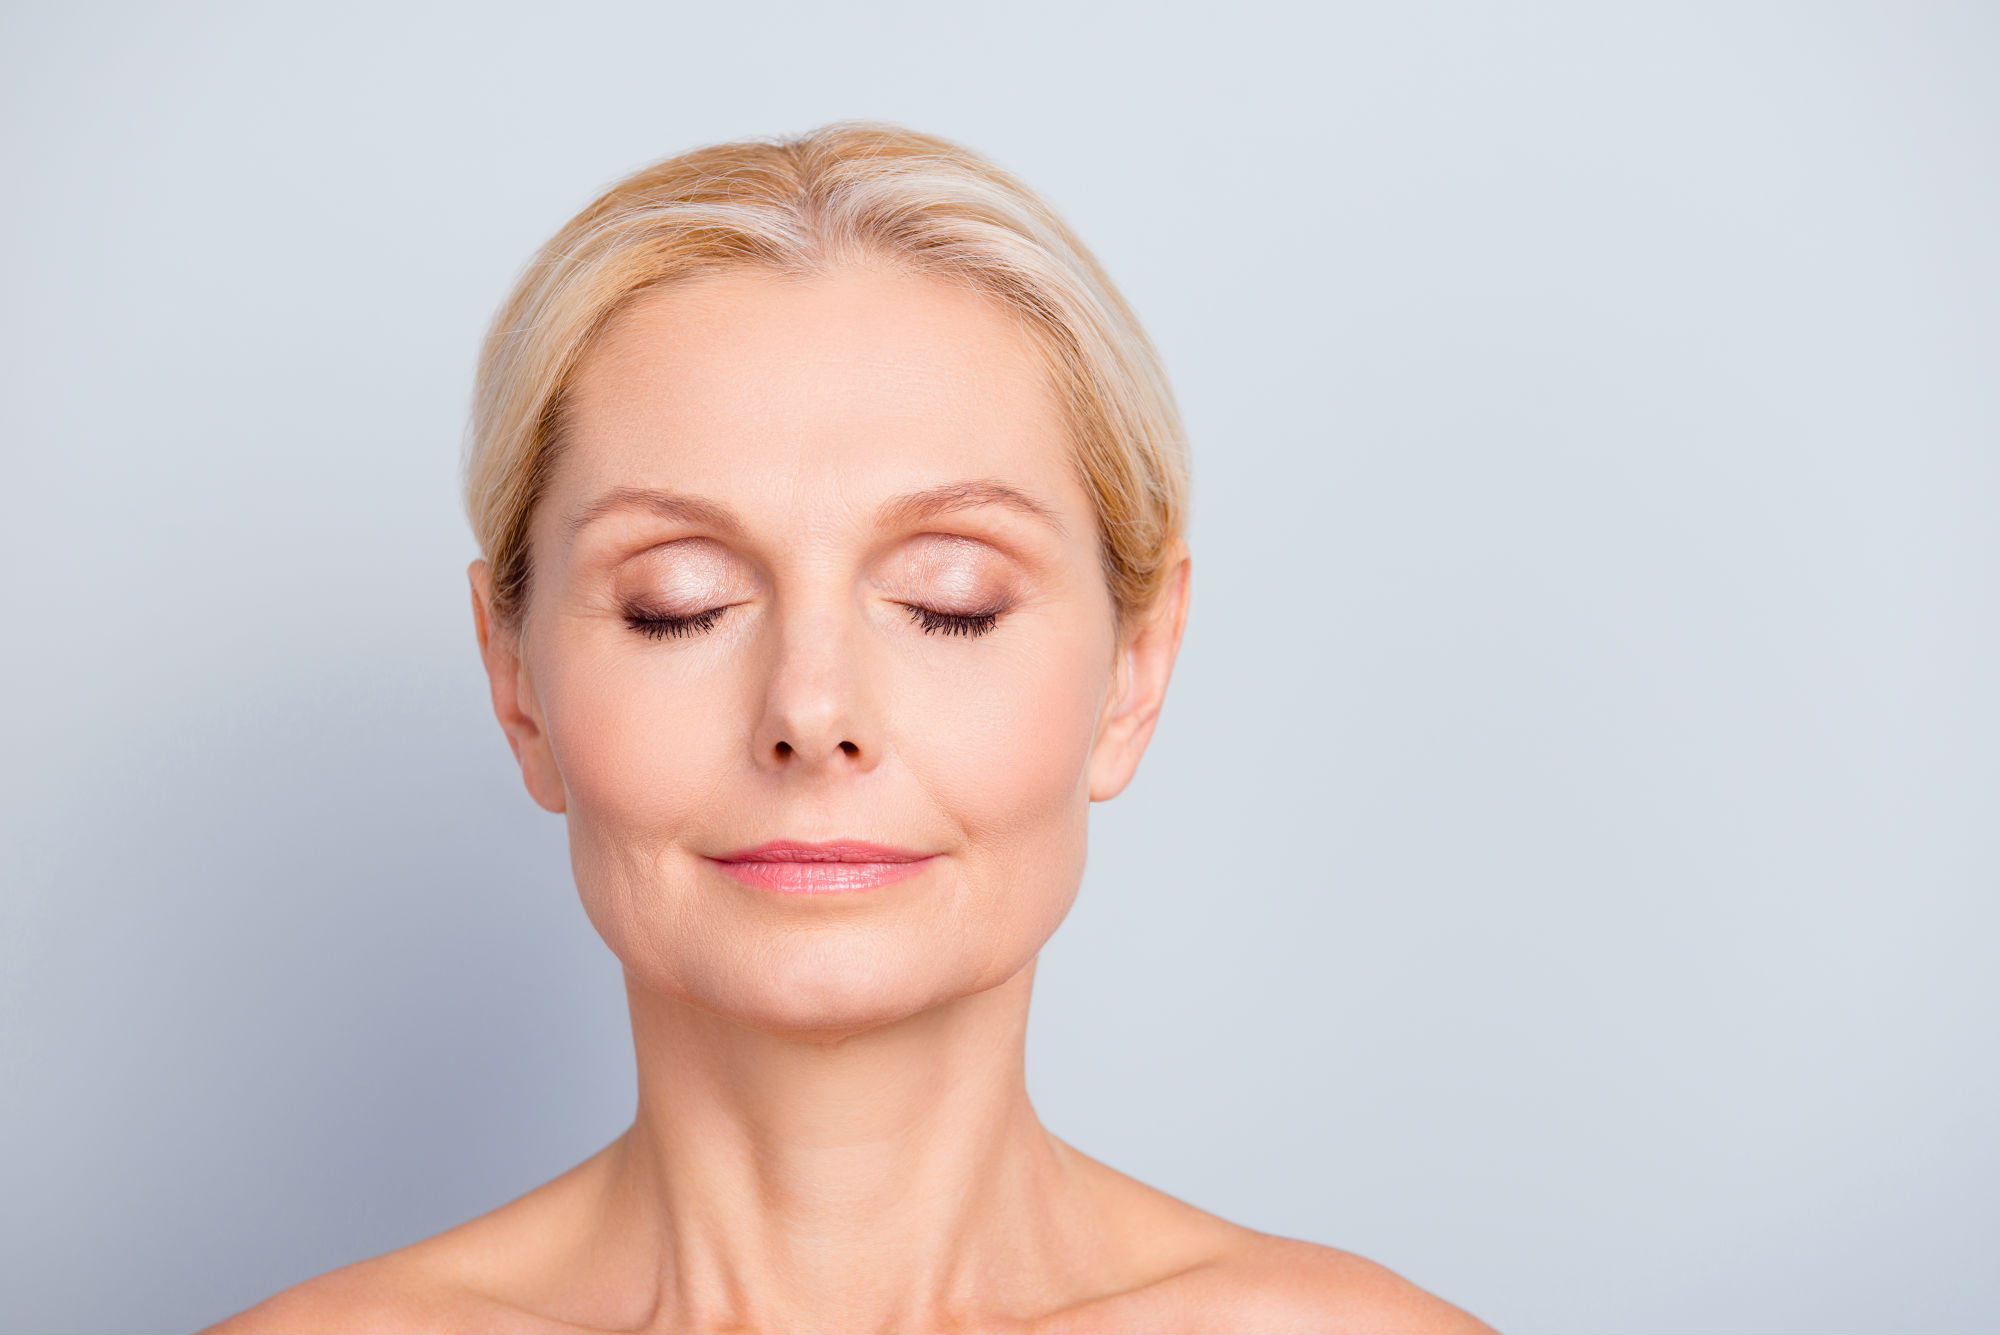 Relax Neck Bands and Wrinkles Safely with Botox